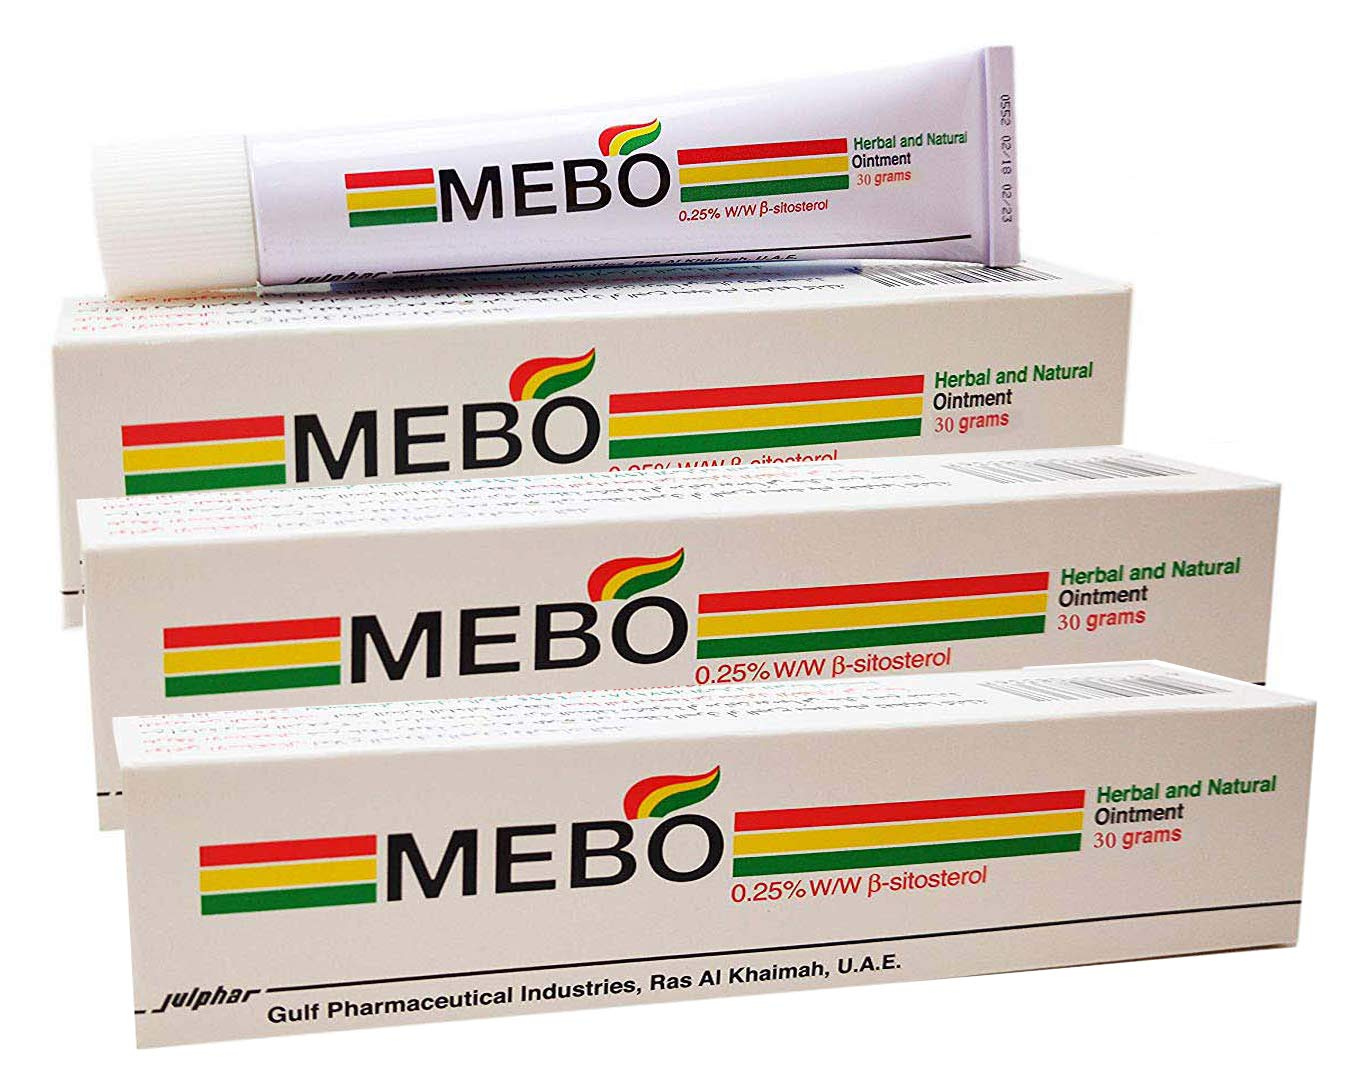 MEBO Burn Fast Relief Pain Cream Skin Healing Ointment Wound & Scar No Marks Care Fast First Aid Health Beauty Care (3 Tubes x 30 grams) by MEBO